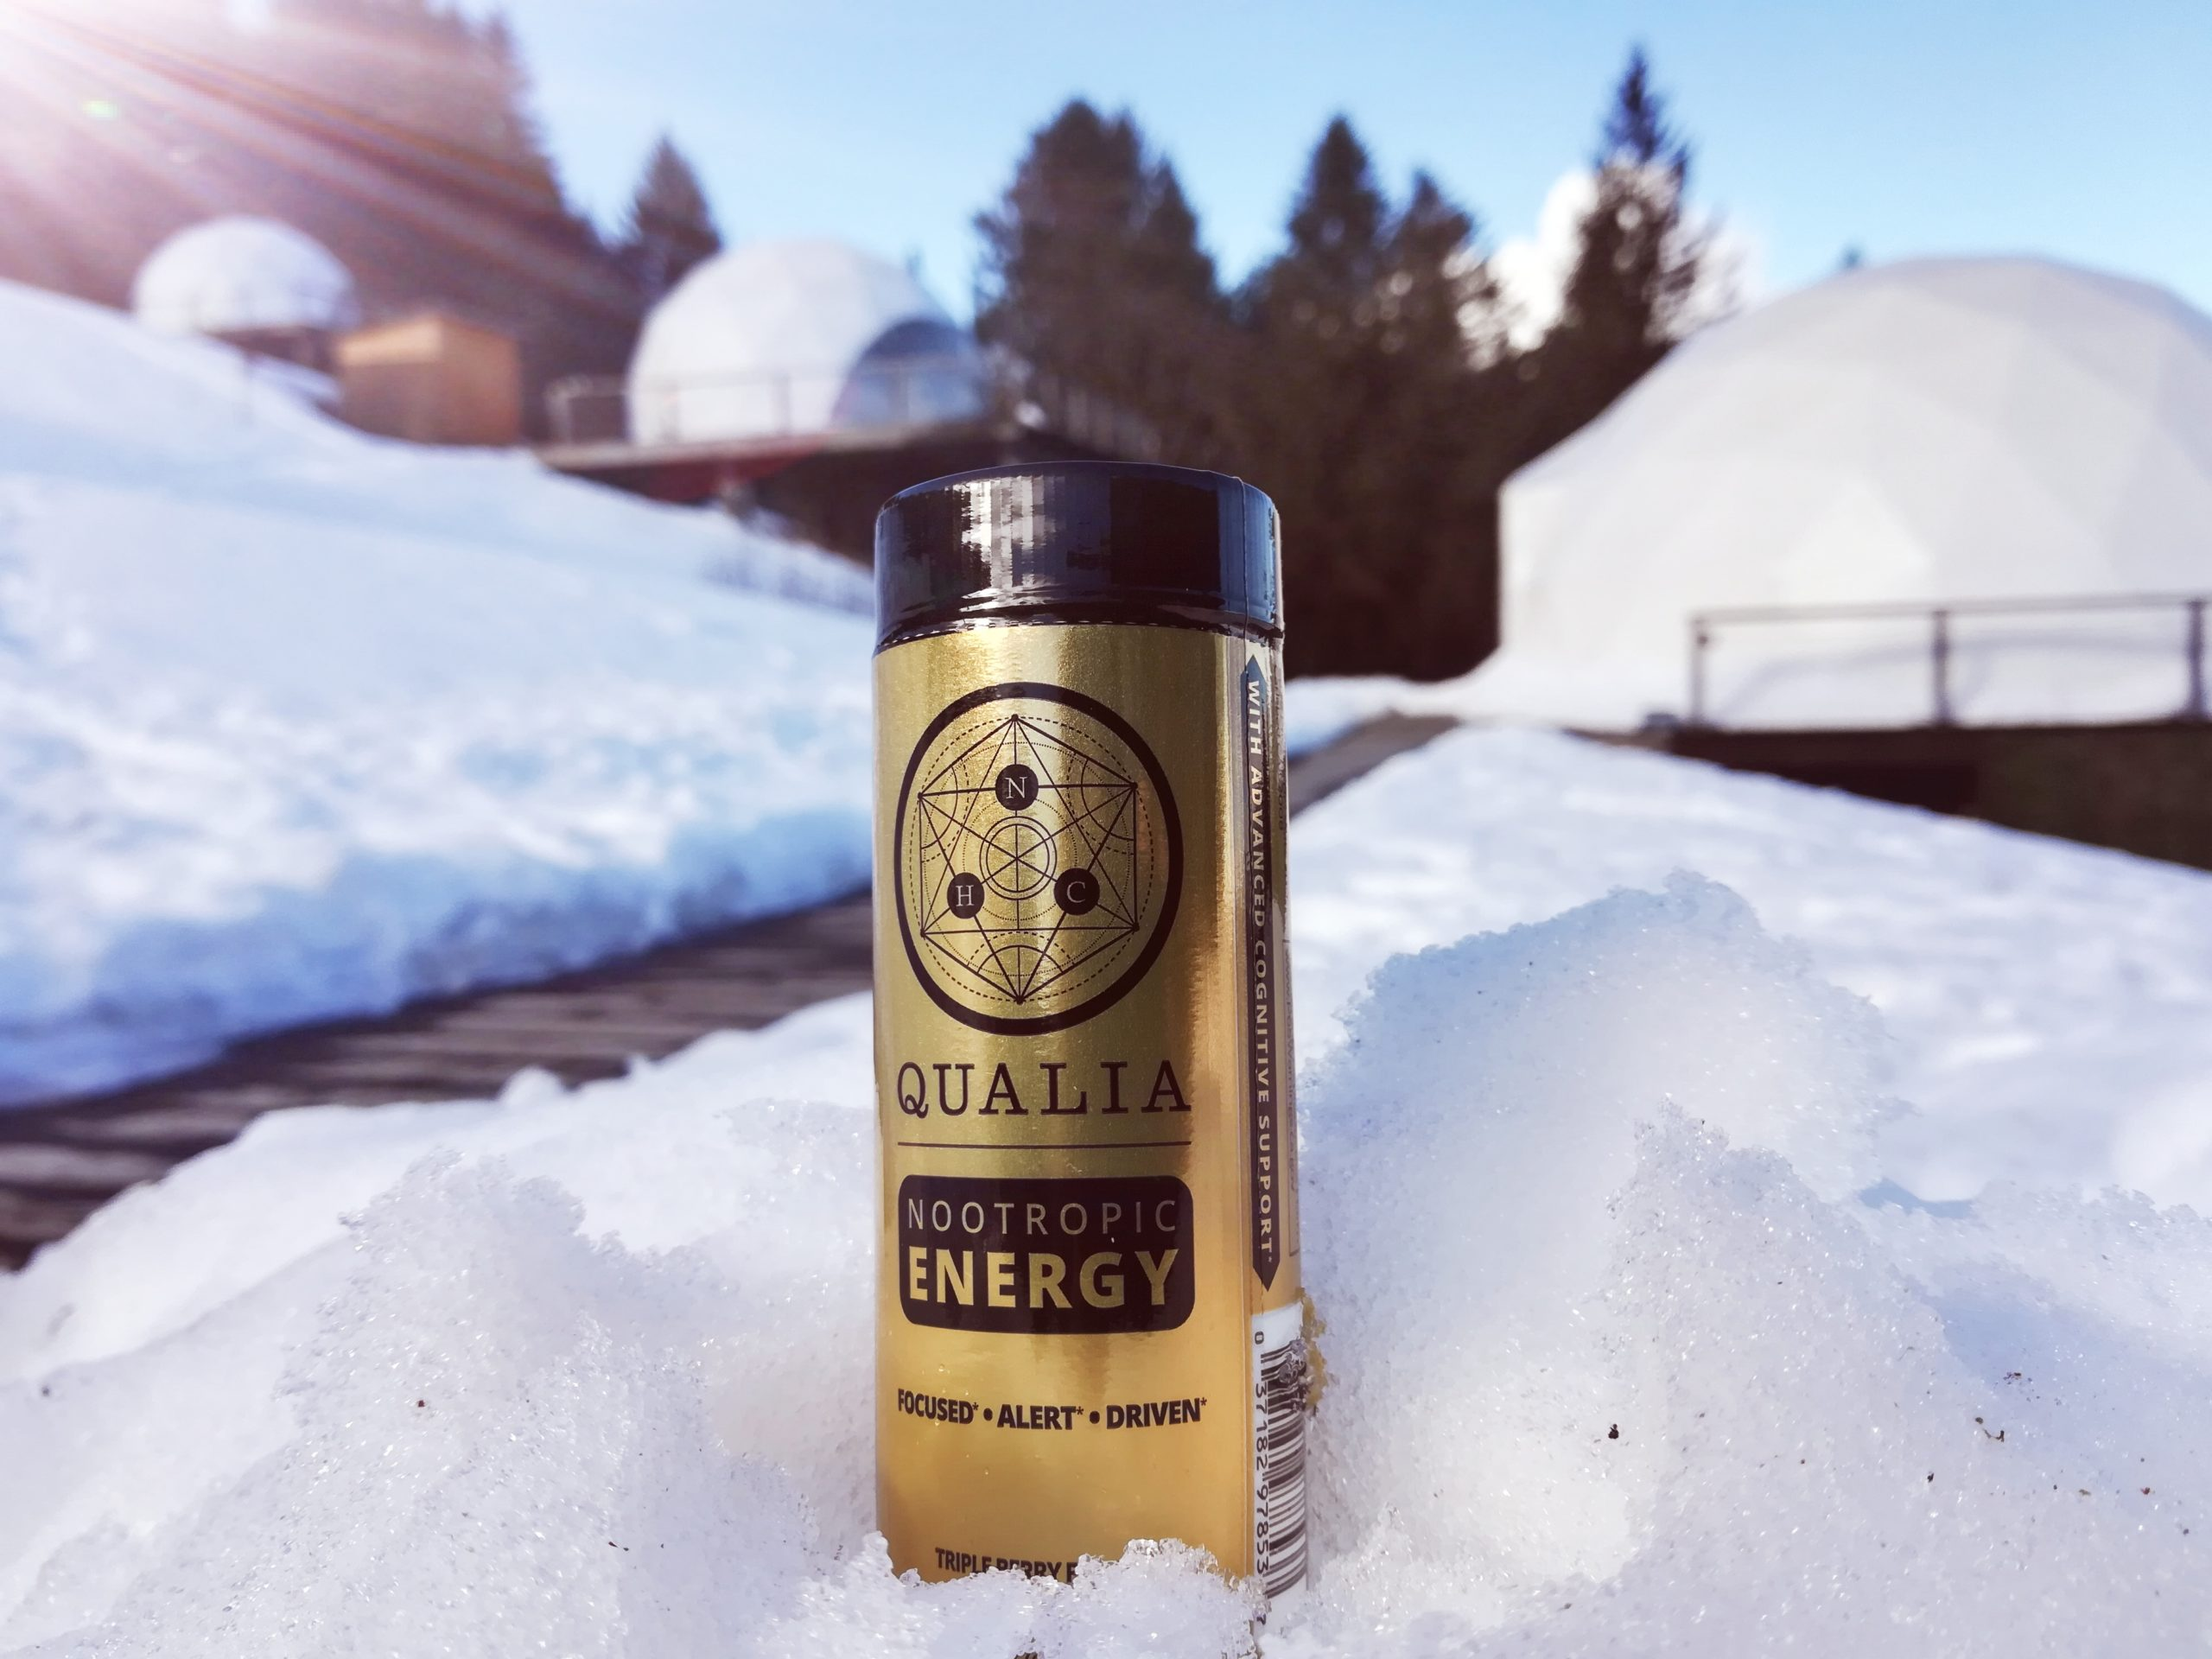 Bottle of Qualia Nootropic Energy Shot in the snow